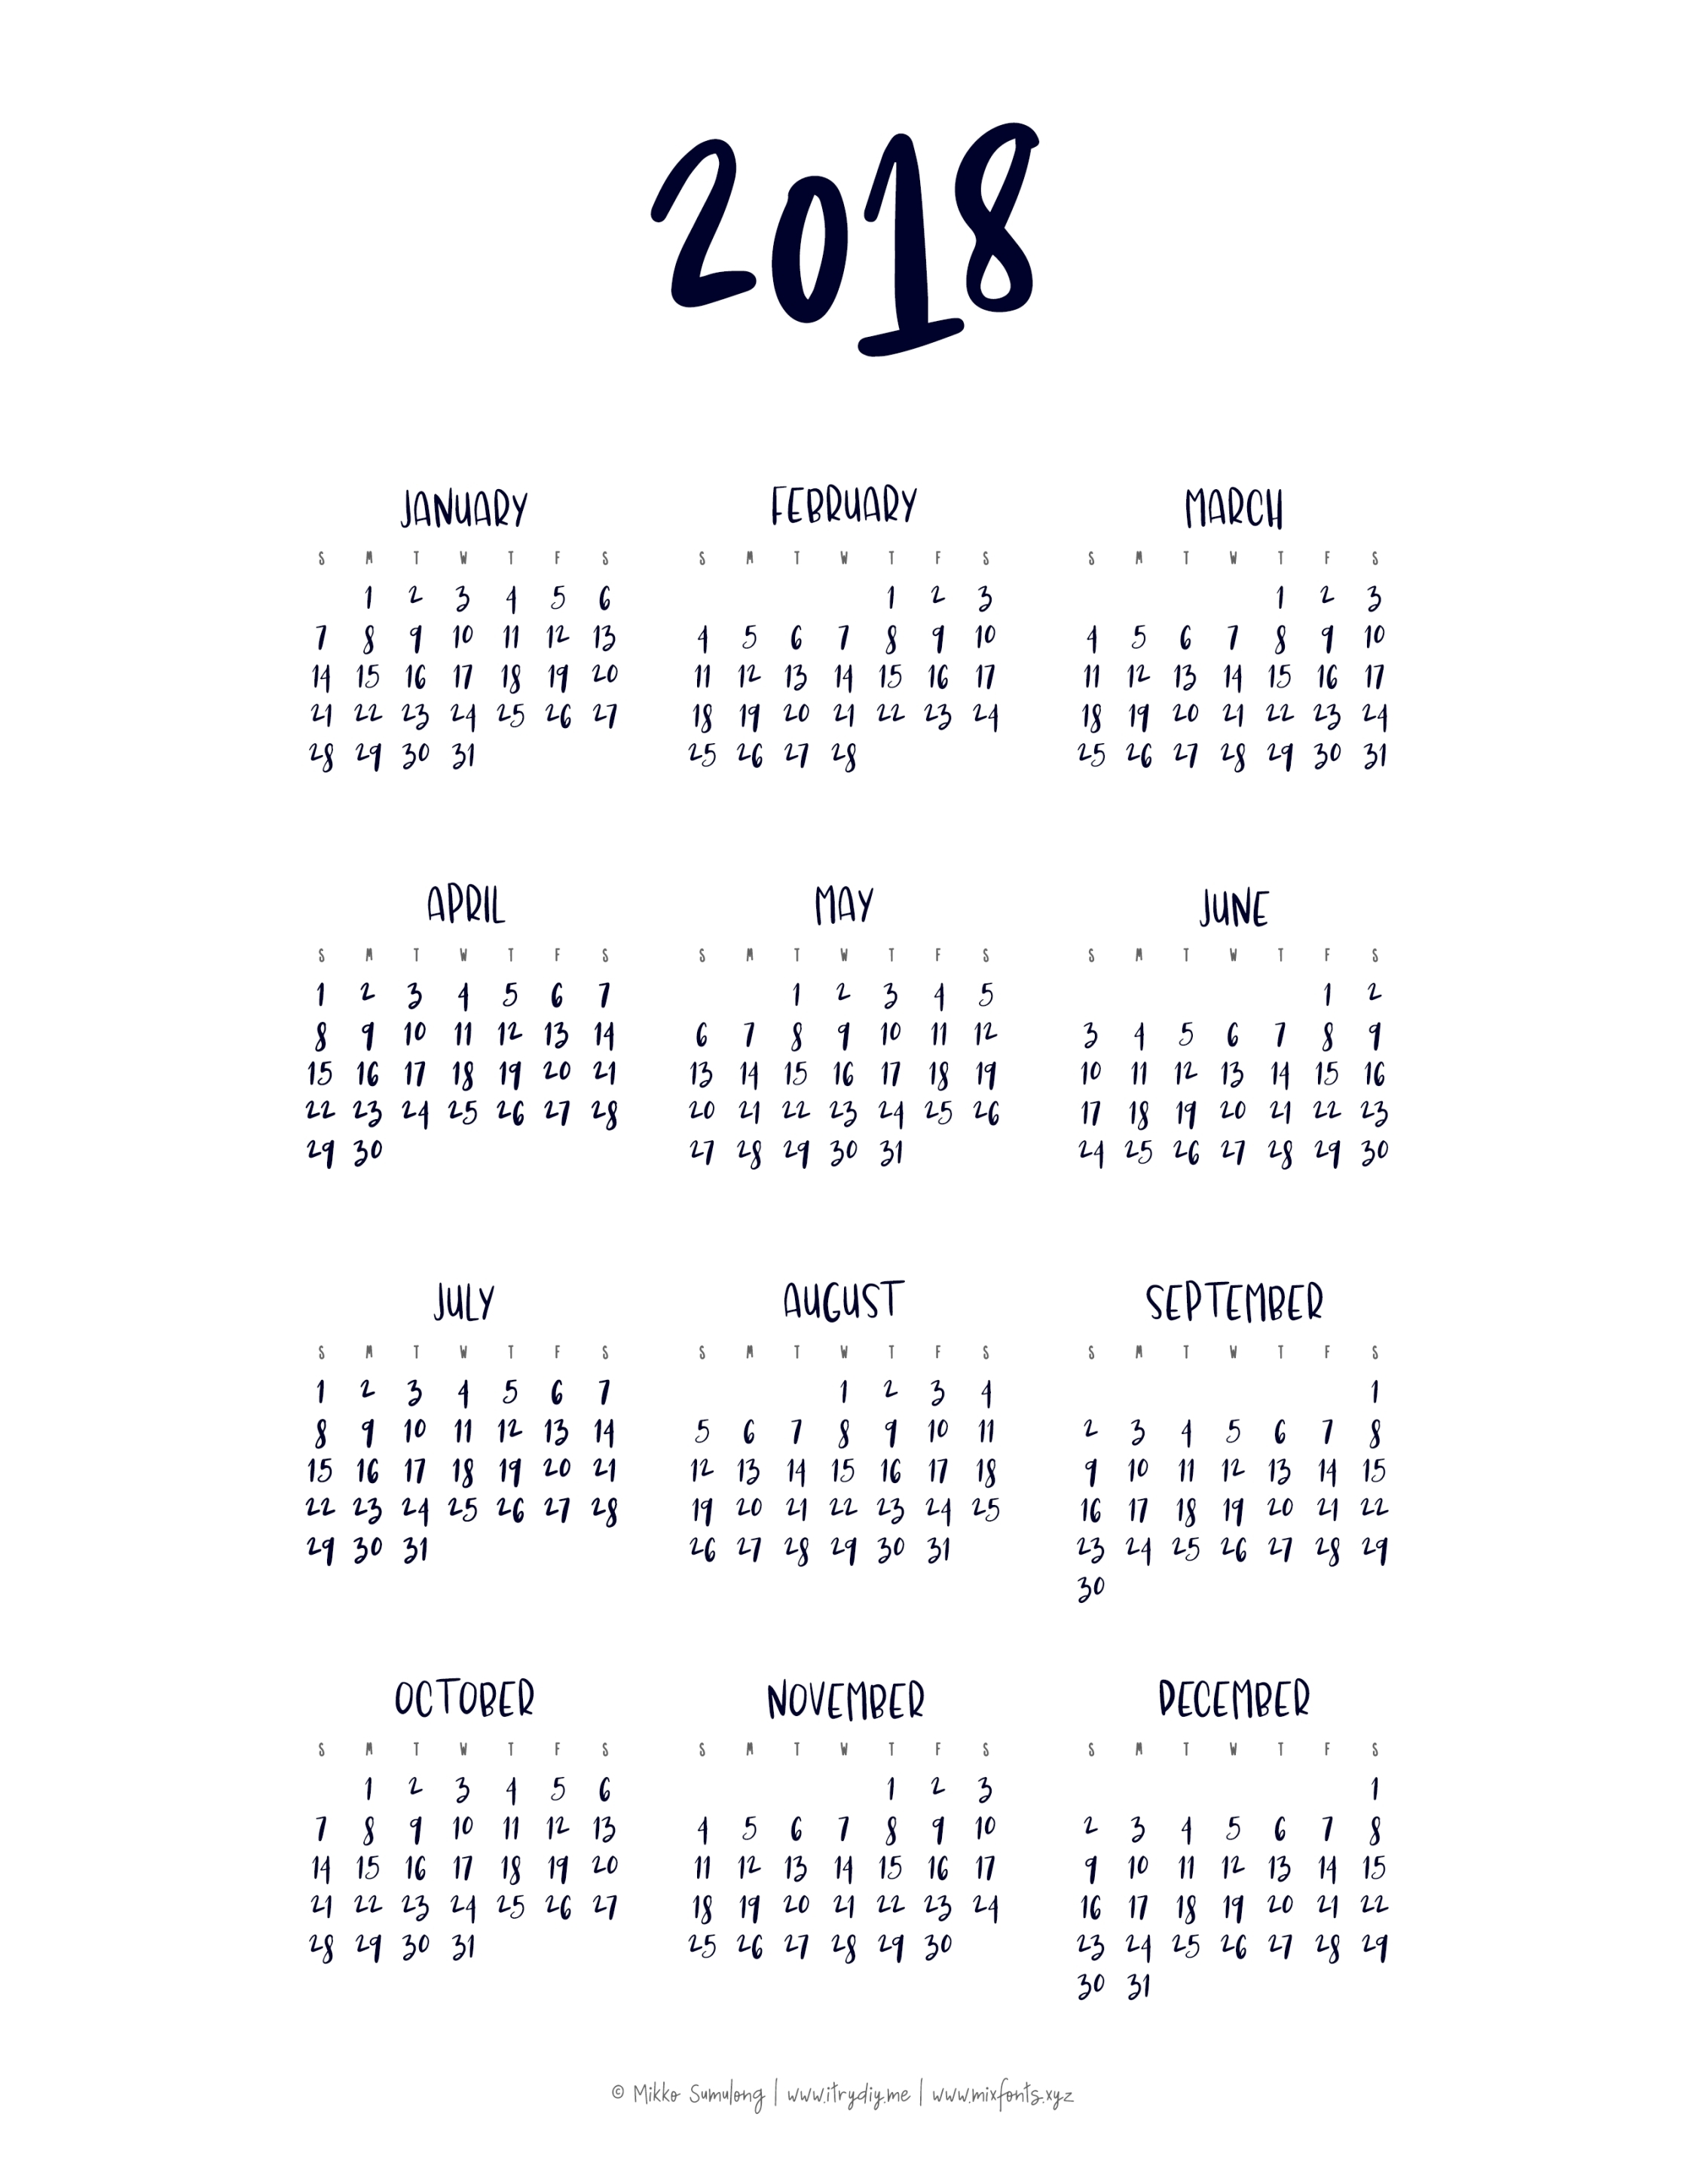 Free Printable Calendar Year At A Glance Calendar | Template inside Free Printable Calendar Year At A Glance Calendar